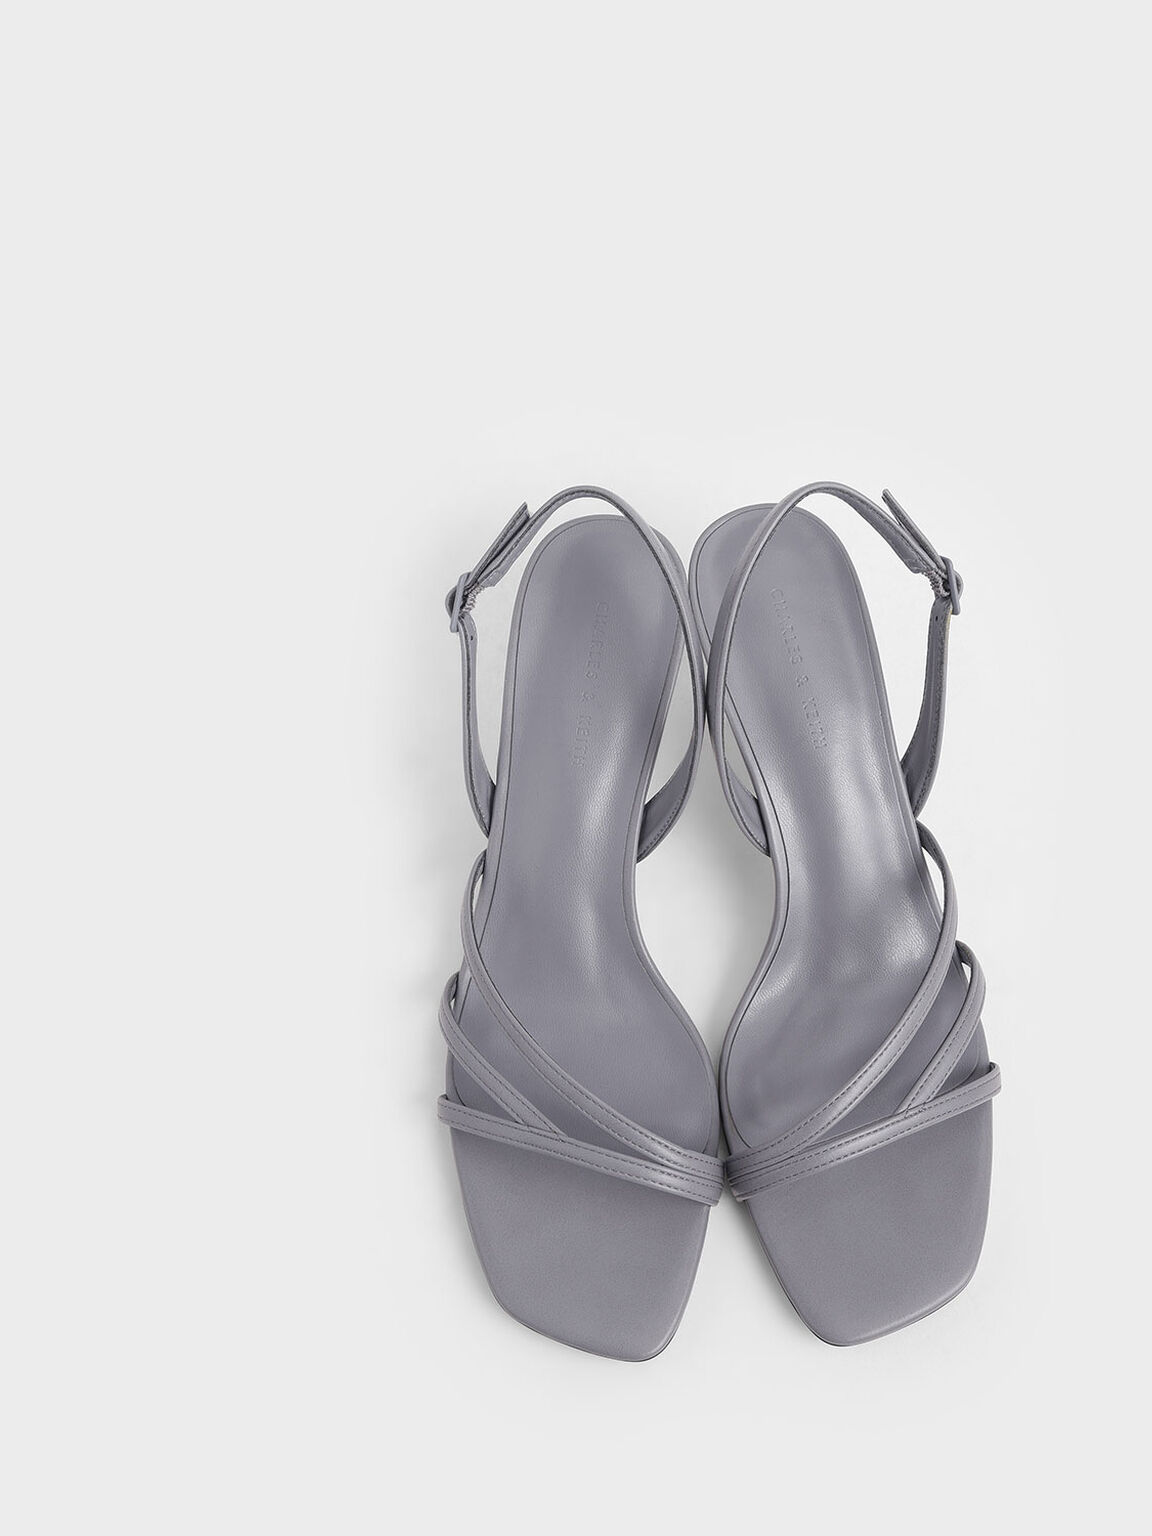 Asymmetric Strappy Heels, Lilac Grey, hi-res